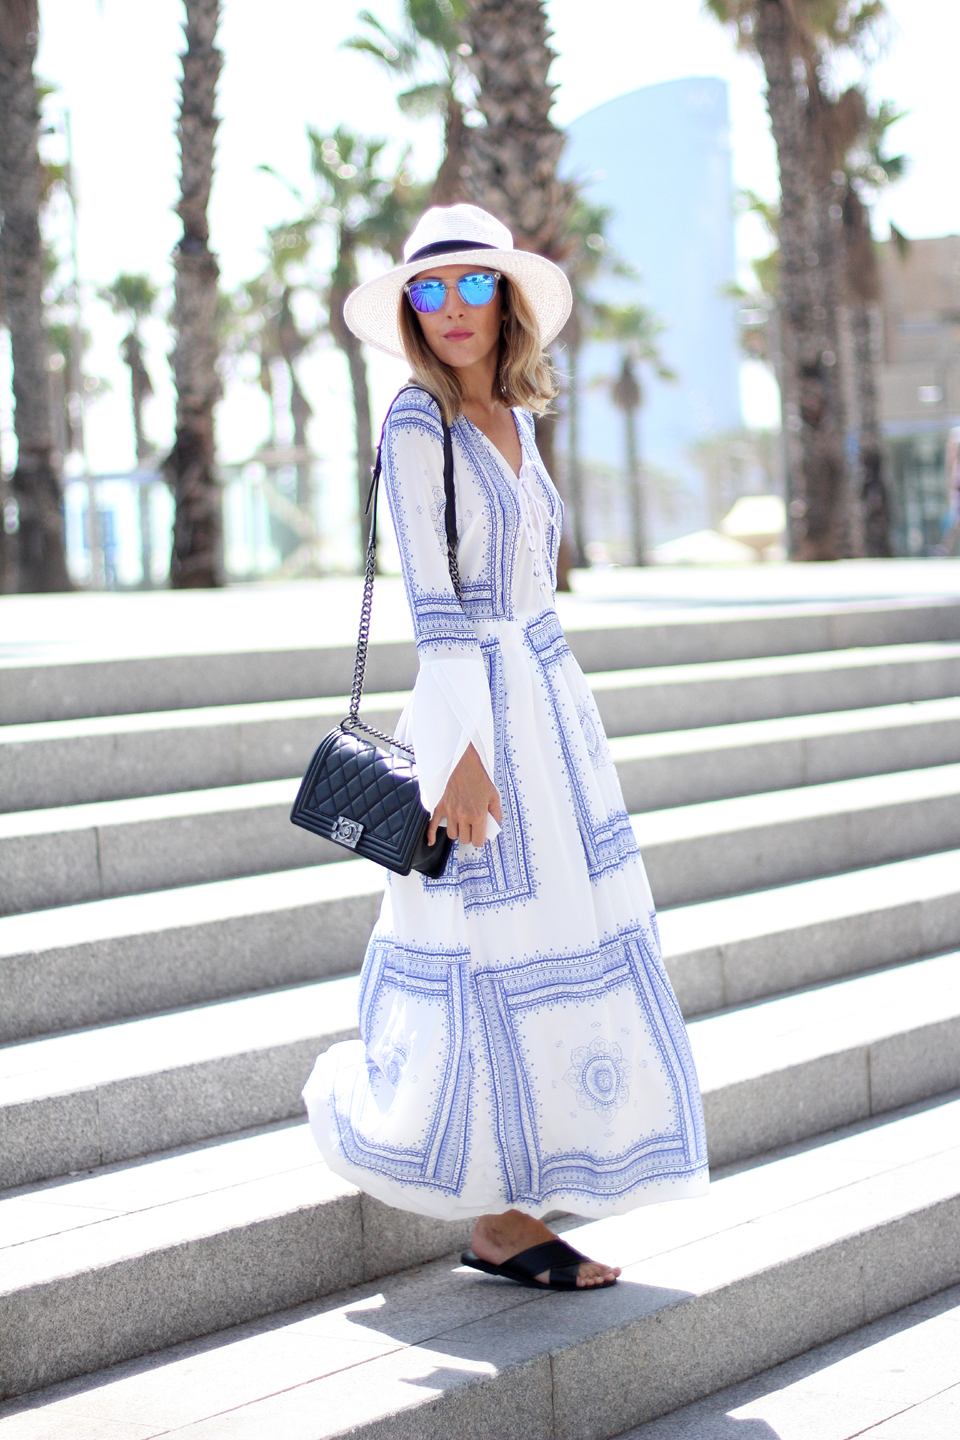 Barcelona-fashion-blogger-2015 (3)Monica-Sors